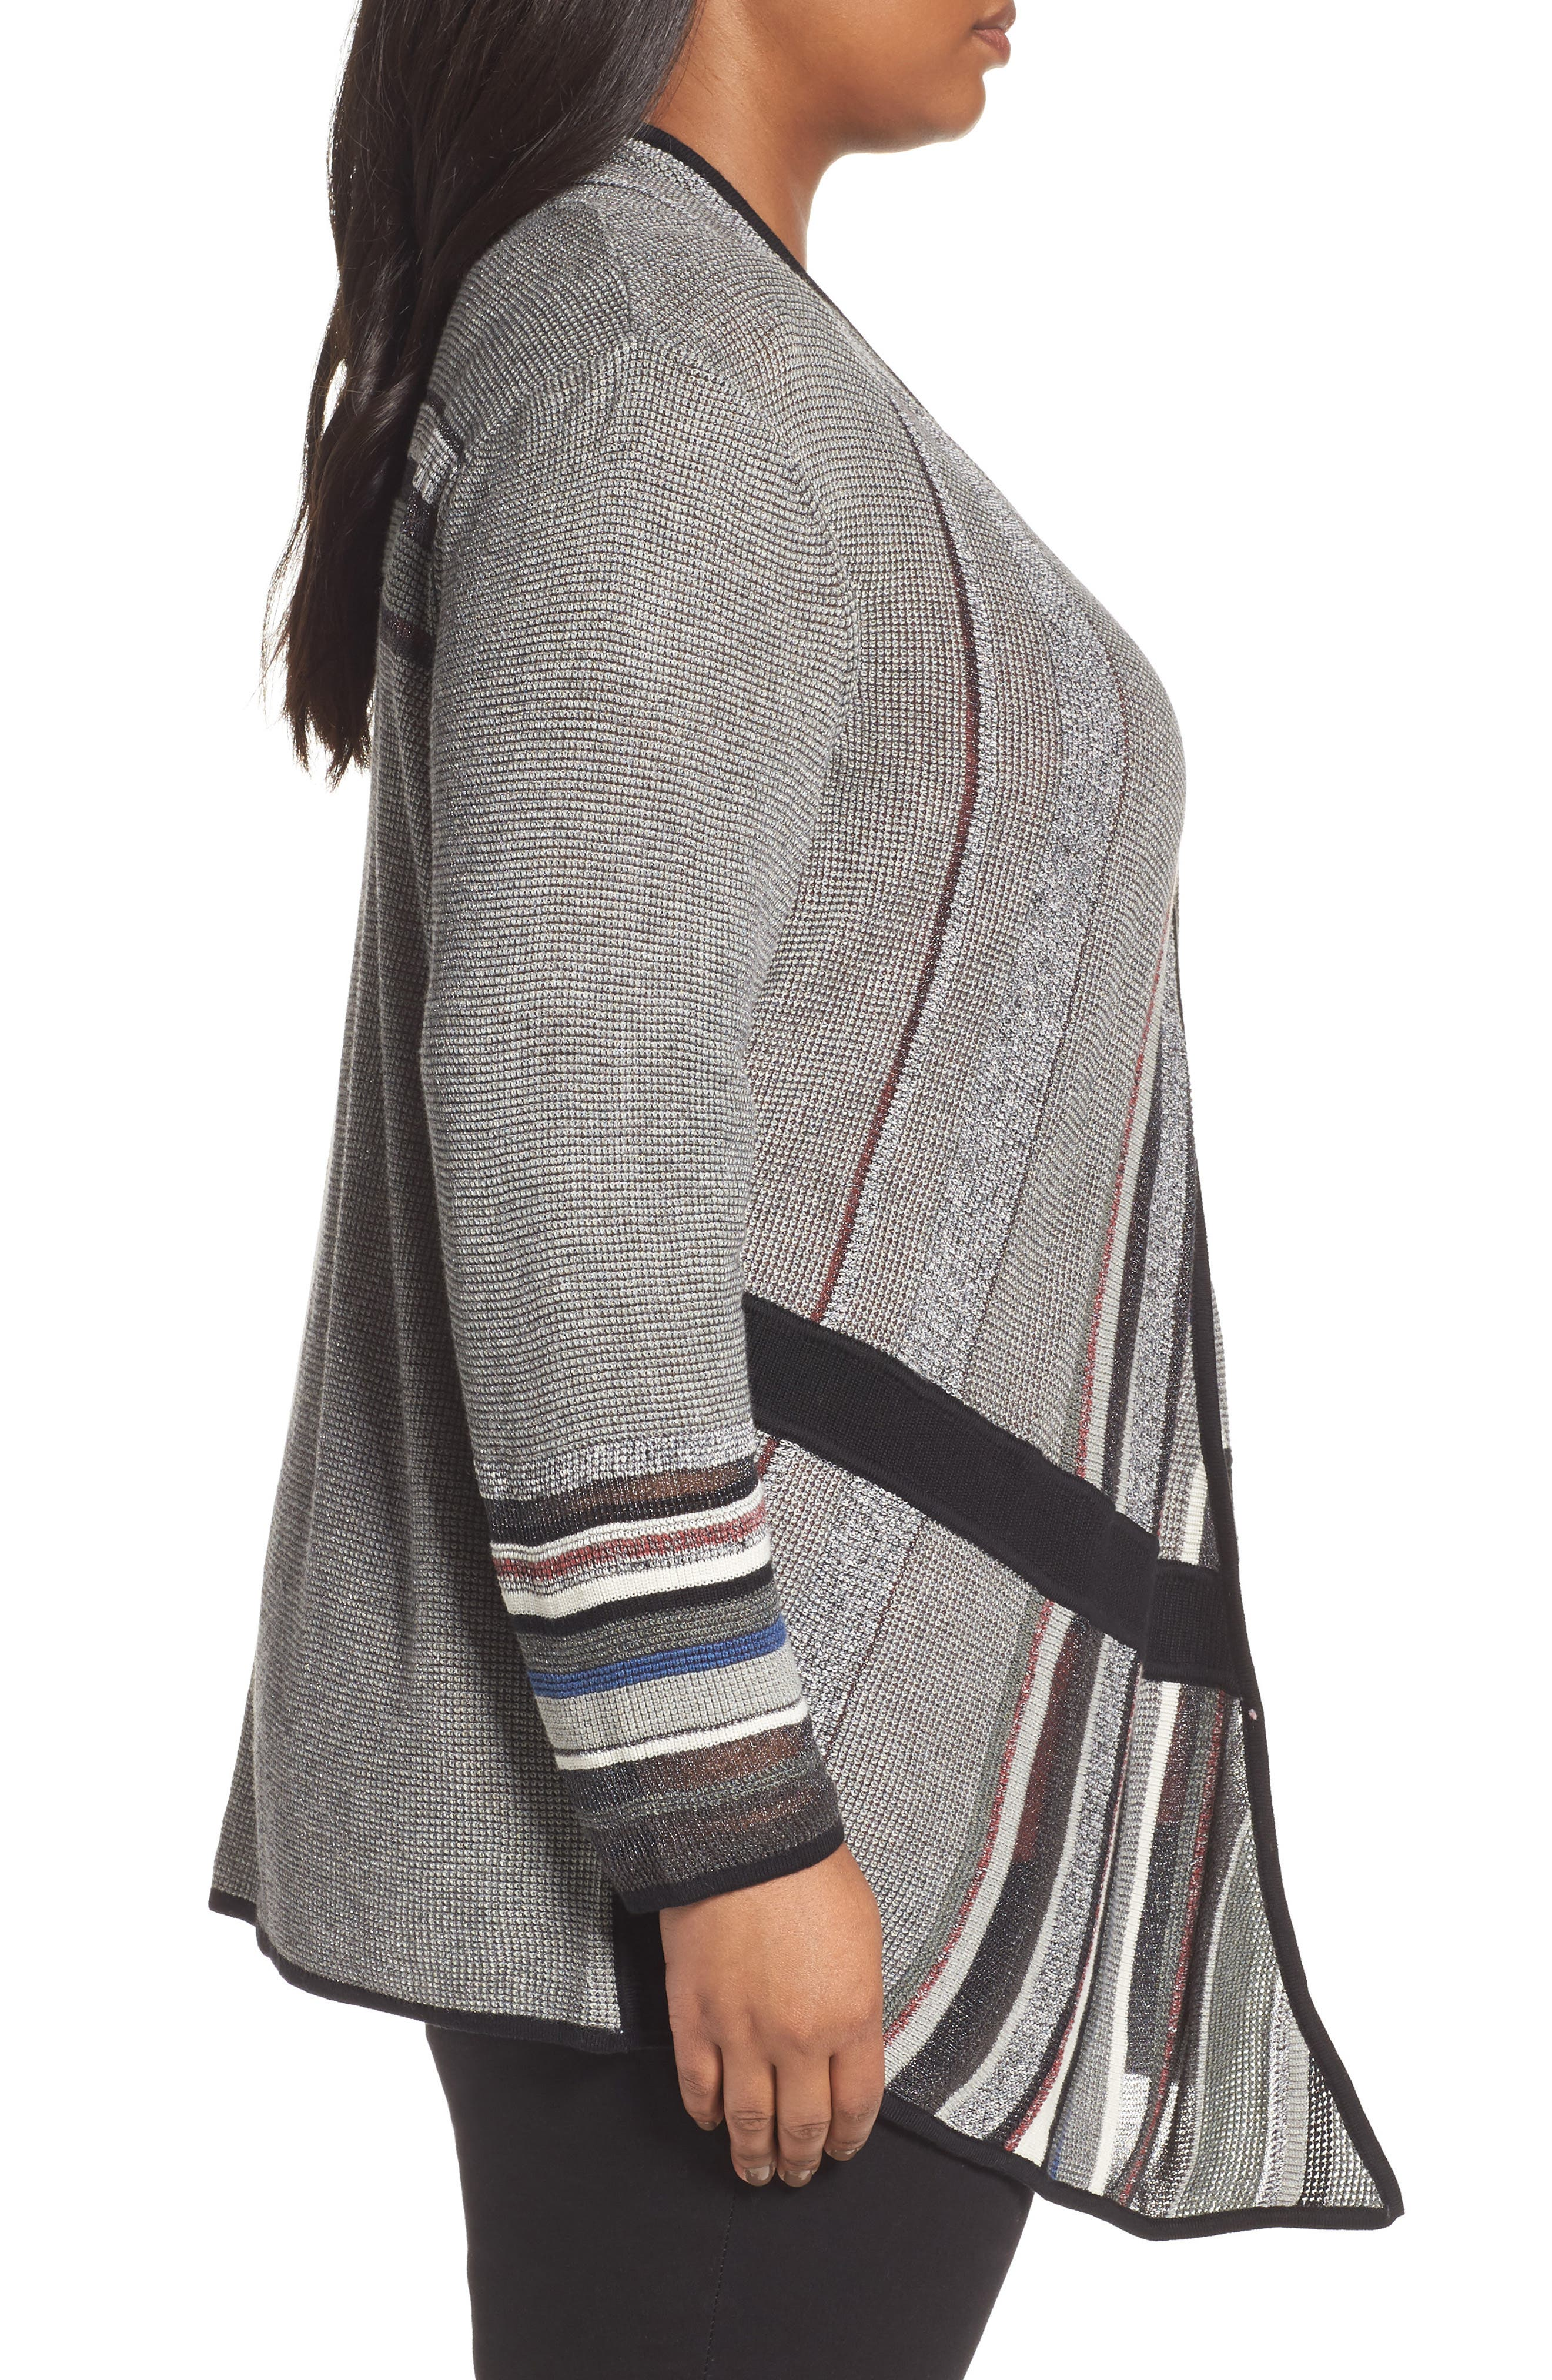 Mirror Image Cardigan,                             Alternate thumbnail 3, color,                             BLACK MULTI